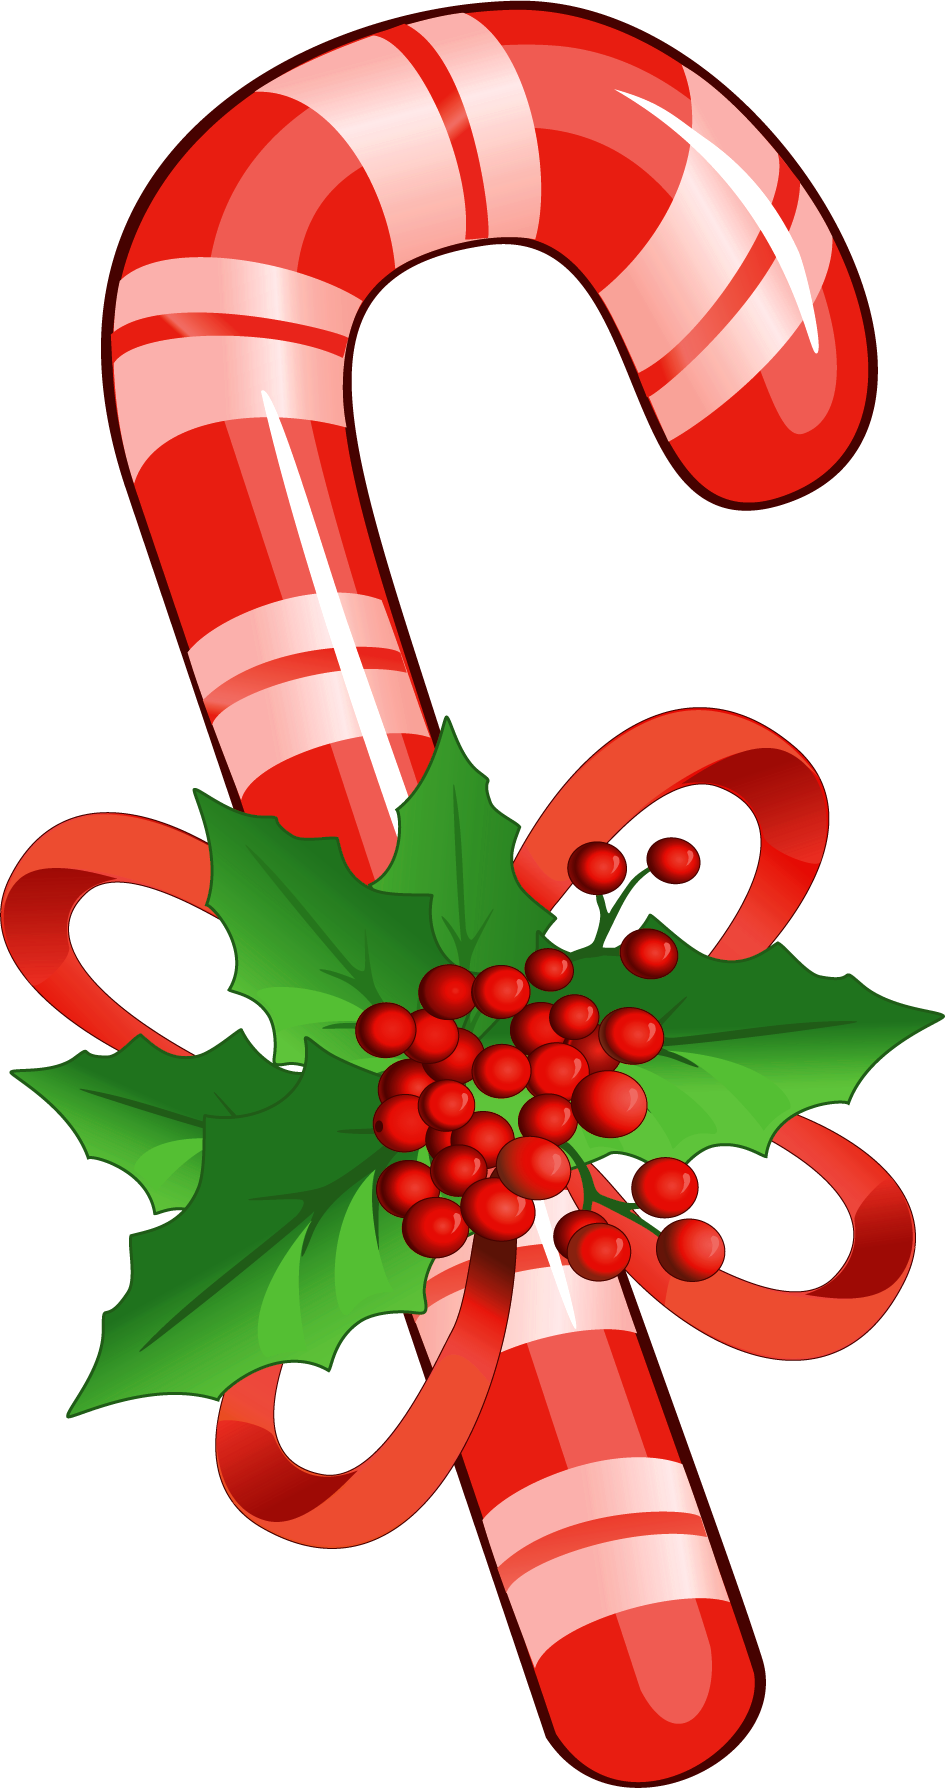 Cookies clipart candy. Cane with mistletoe png